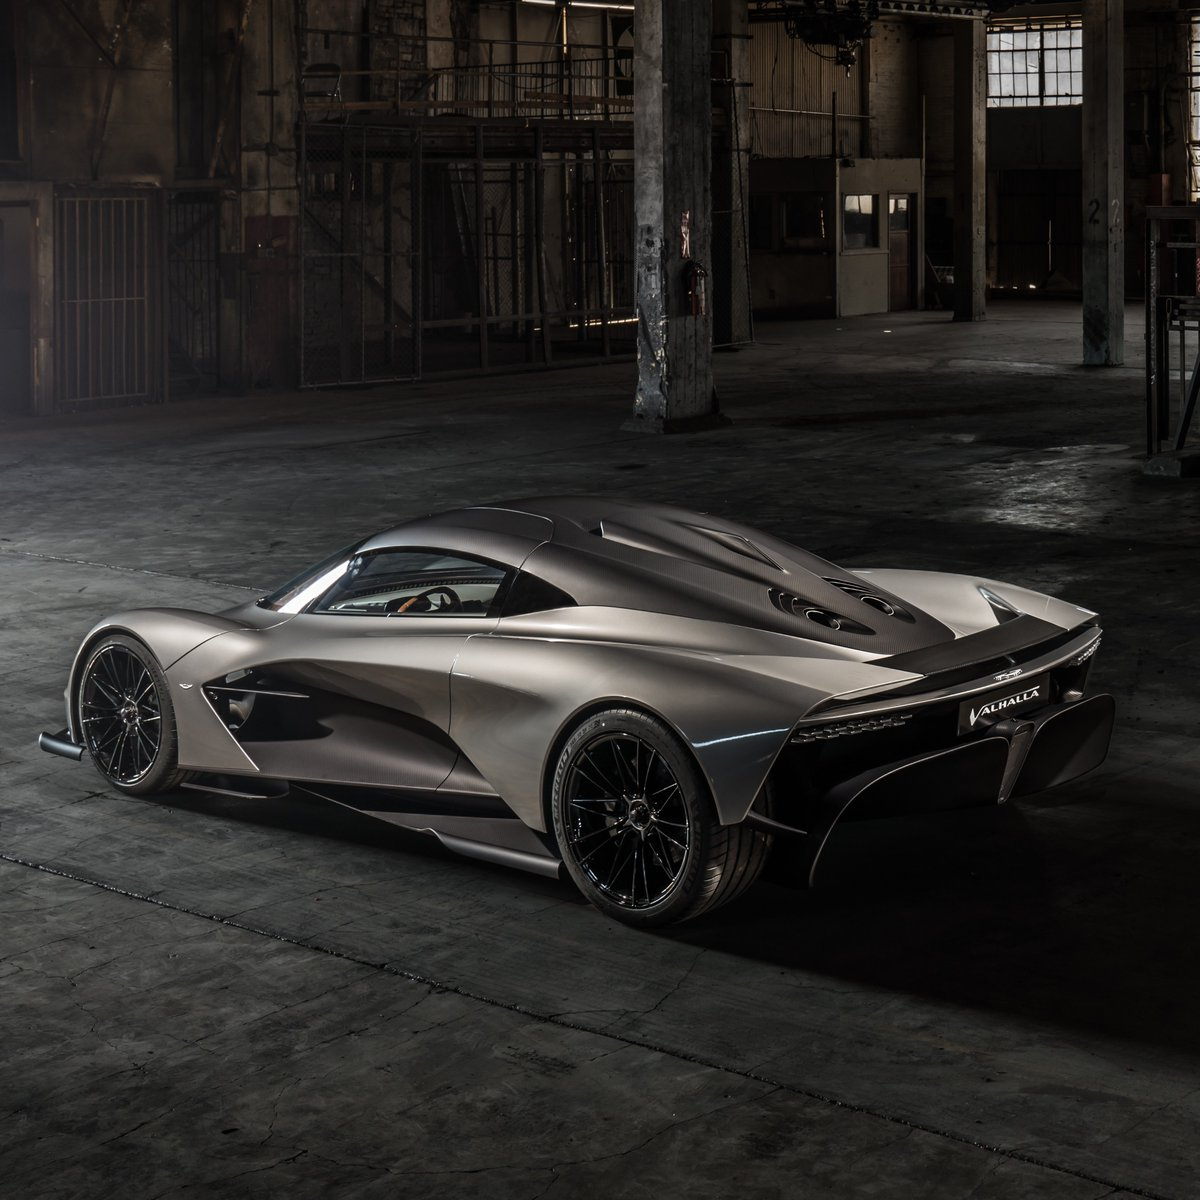 Aston Martin On Twitter Sharing The Same Fundamental Styling And Aerodynamic Philosophy With Aston Martin Valkyrie Valhalla Features A Pronounced Front Keel And Large Rear Diffuser With The Underfloor Generating The Bulk